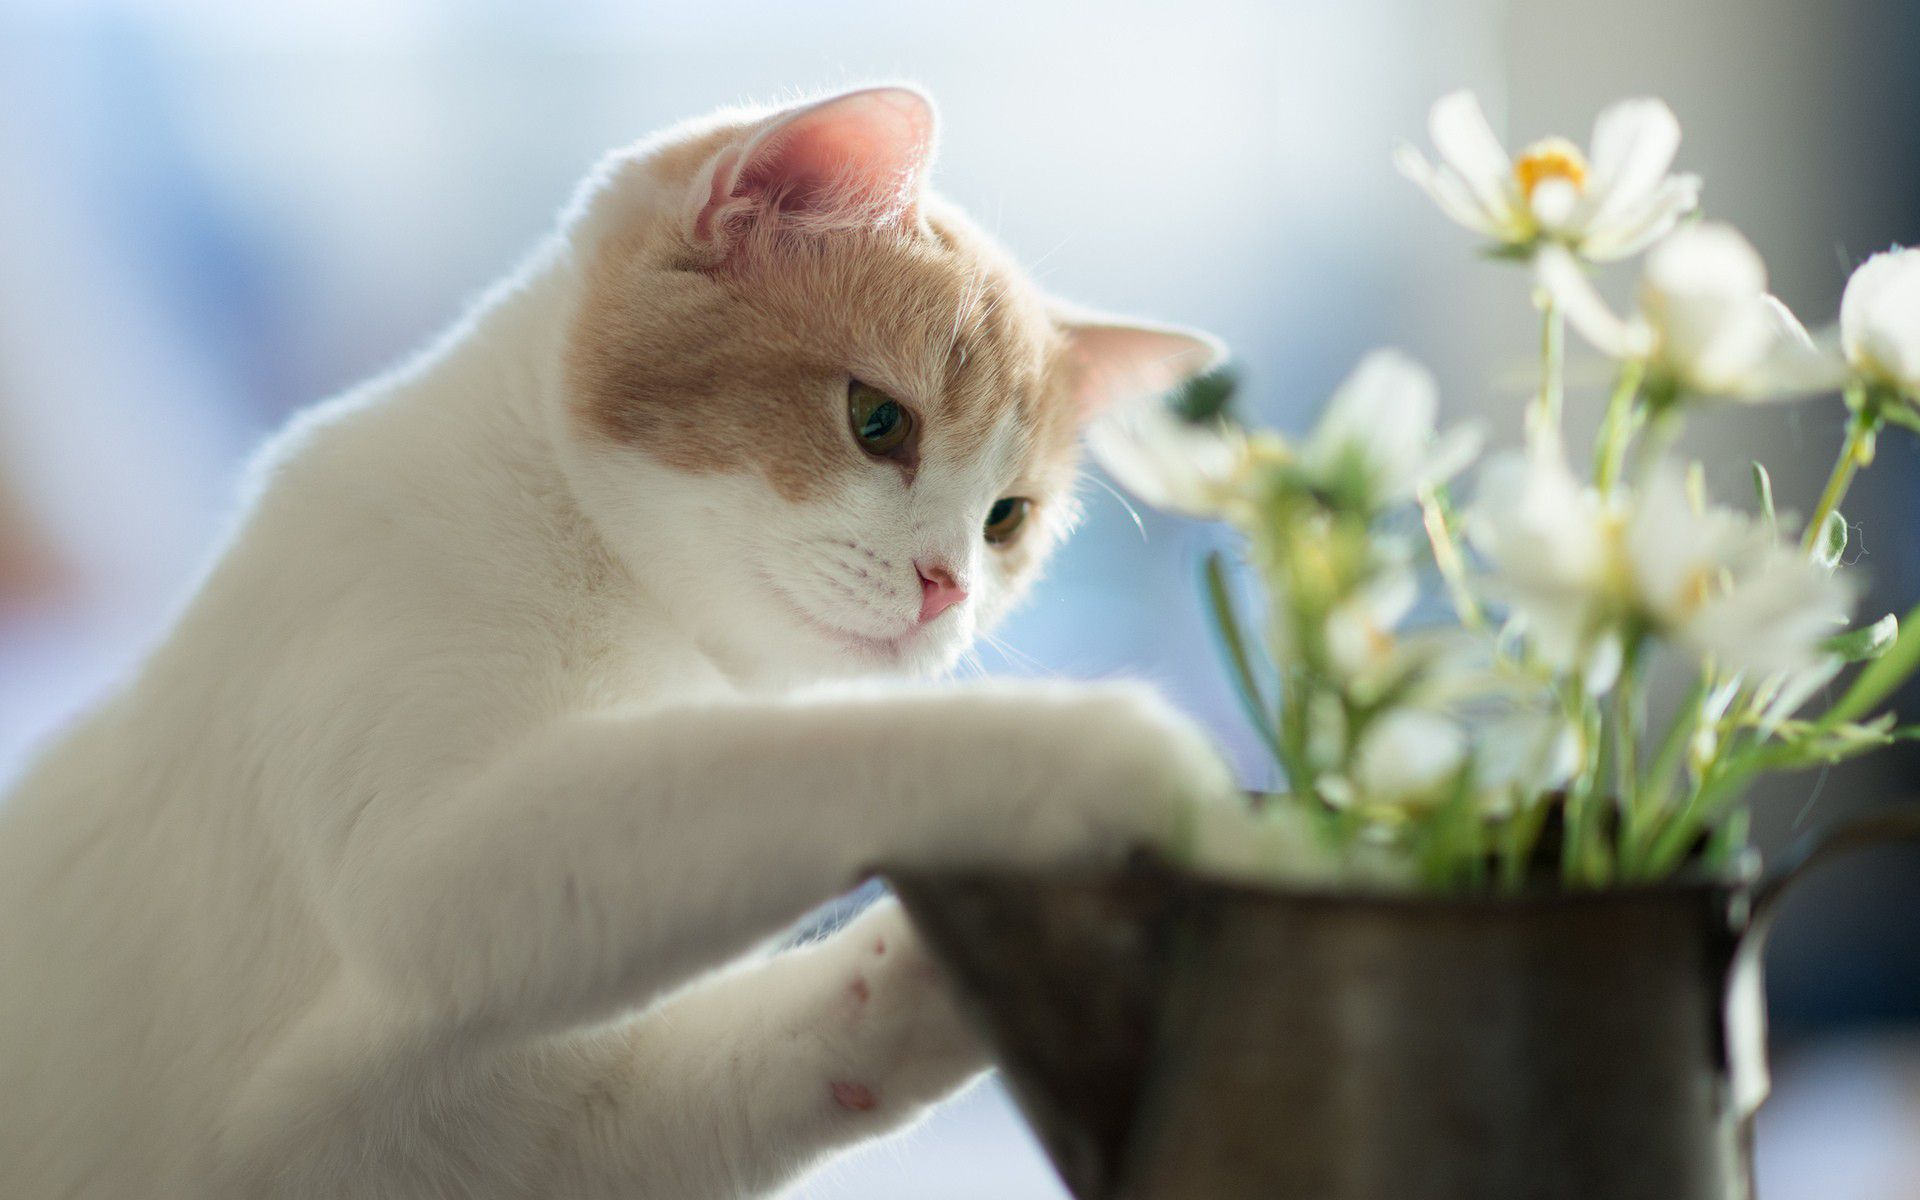 Funny Cat Planting Flowers HD Desktop Wallpaper